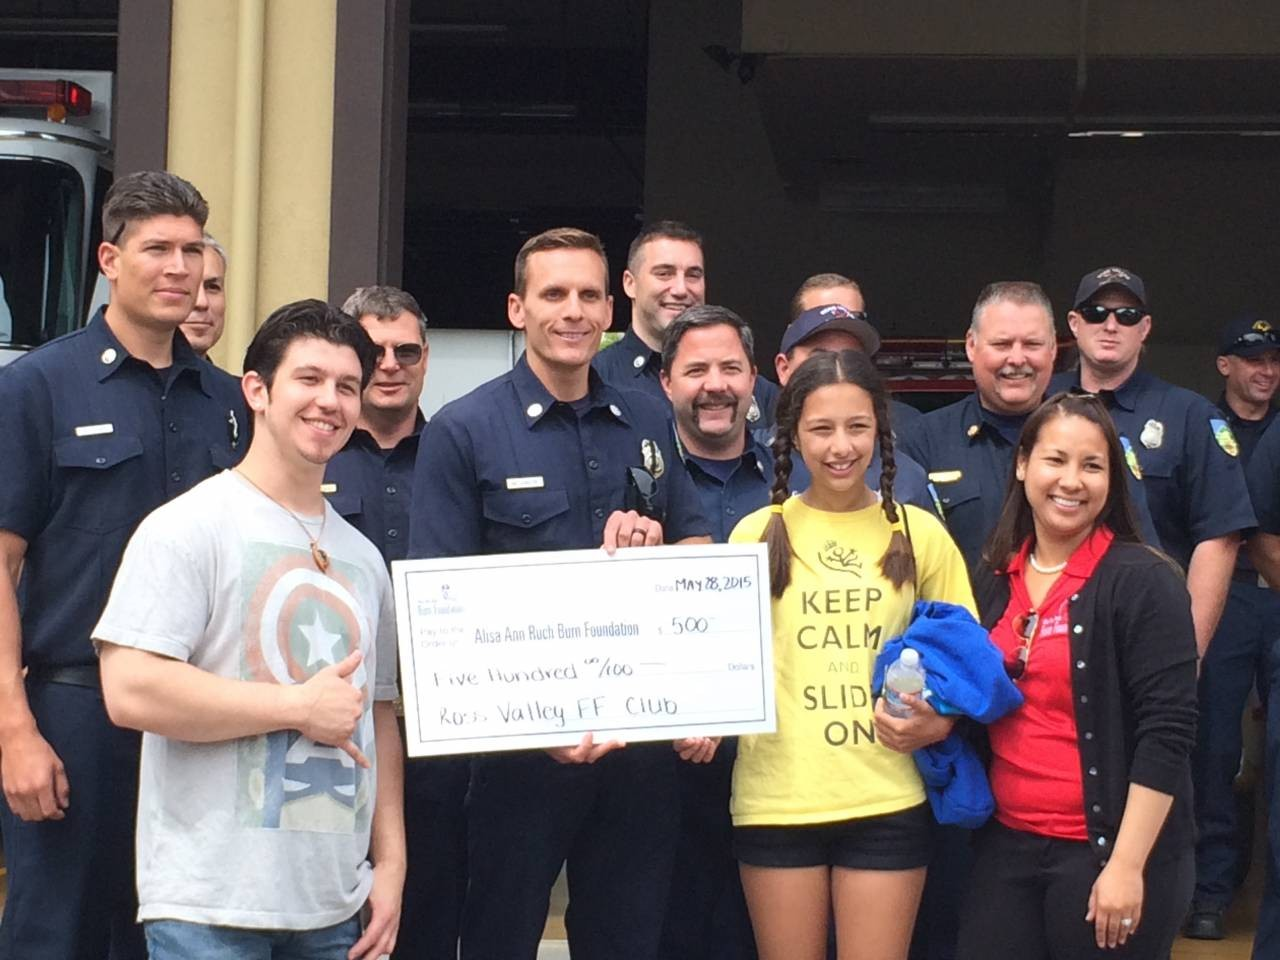 Ross Valley Firefighters Host Burn Foundation Benefit, Donate $500